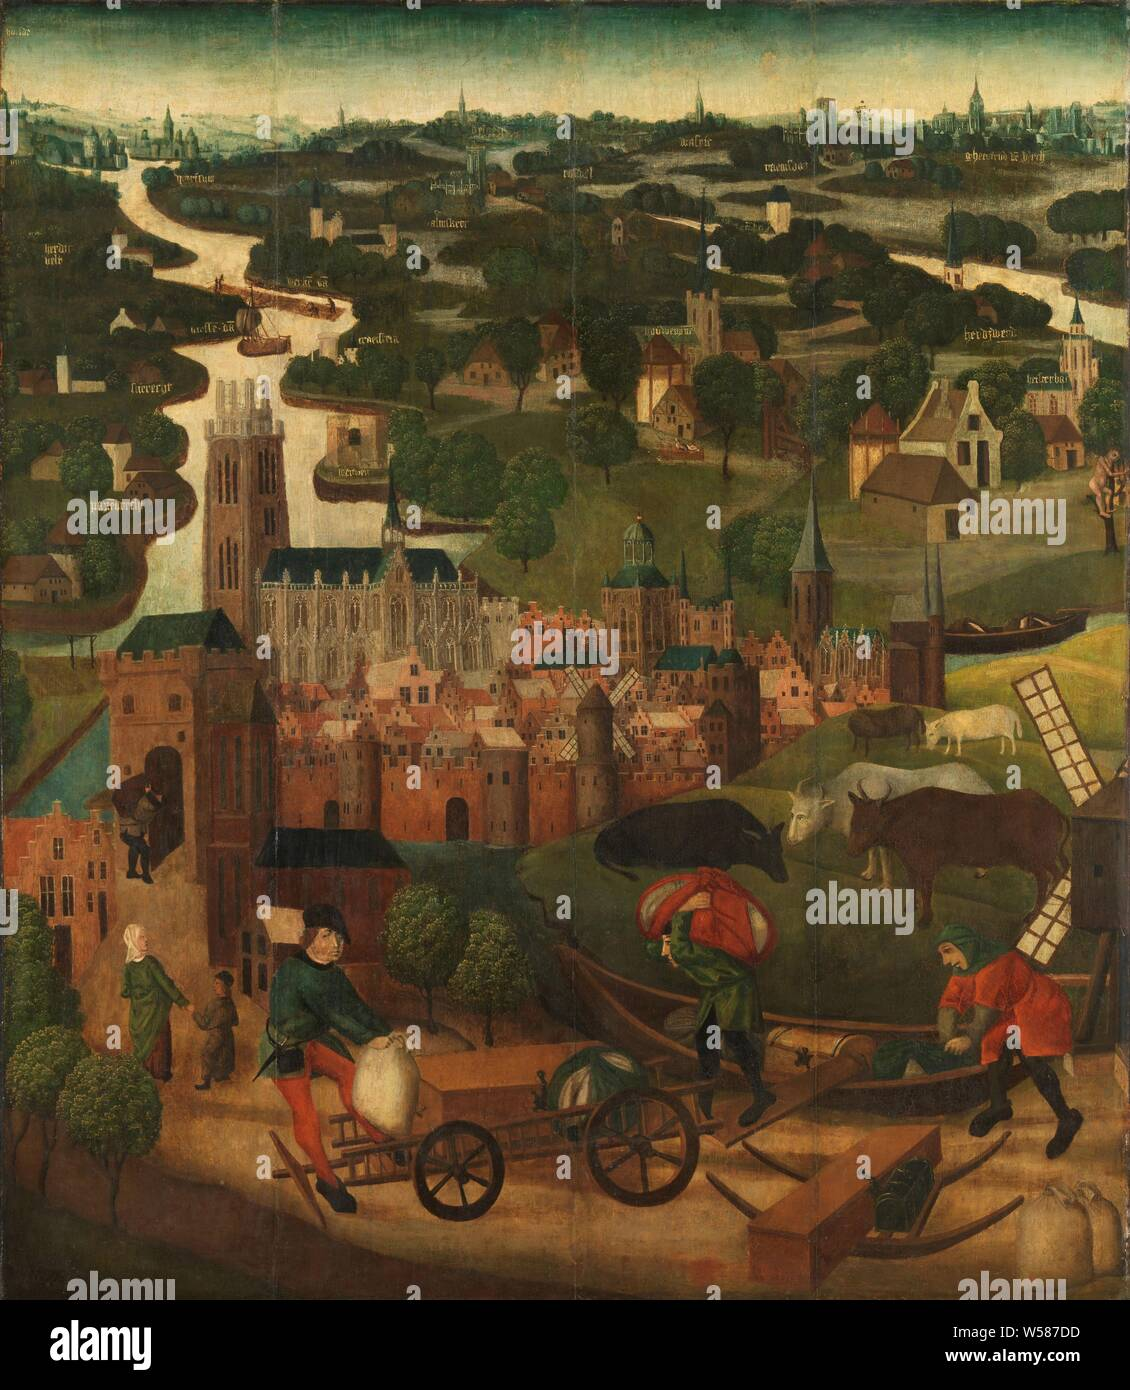 The Saint Elizabeth's Day Flood, Exterior left wing of an altarpiece with the Saint Elisabeth flood, November 18-19, 1421, with the city of Dordrecht in the background, The Saint Elisabeth flood, flood at 18 -19 November 1421. In the middle the city of Dordrecht with the Vuilpoort on the left. In the foreground, three men load goods from a boat onto a wagon. On the right cows in the meadow near a mill. In the background the land between Maas and Waal with different villages that are named. The outside of the left panel is part of two panels, painted on both sides with scenes from the life - Stock Photo